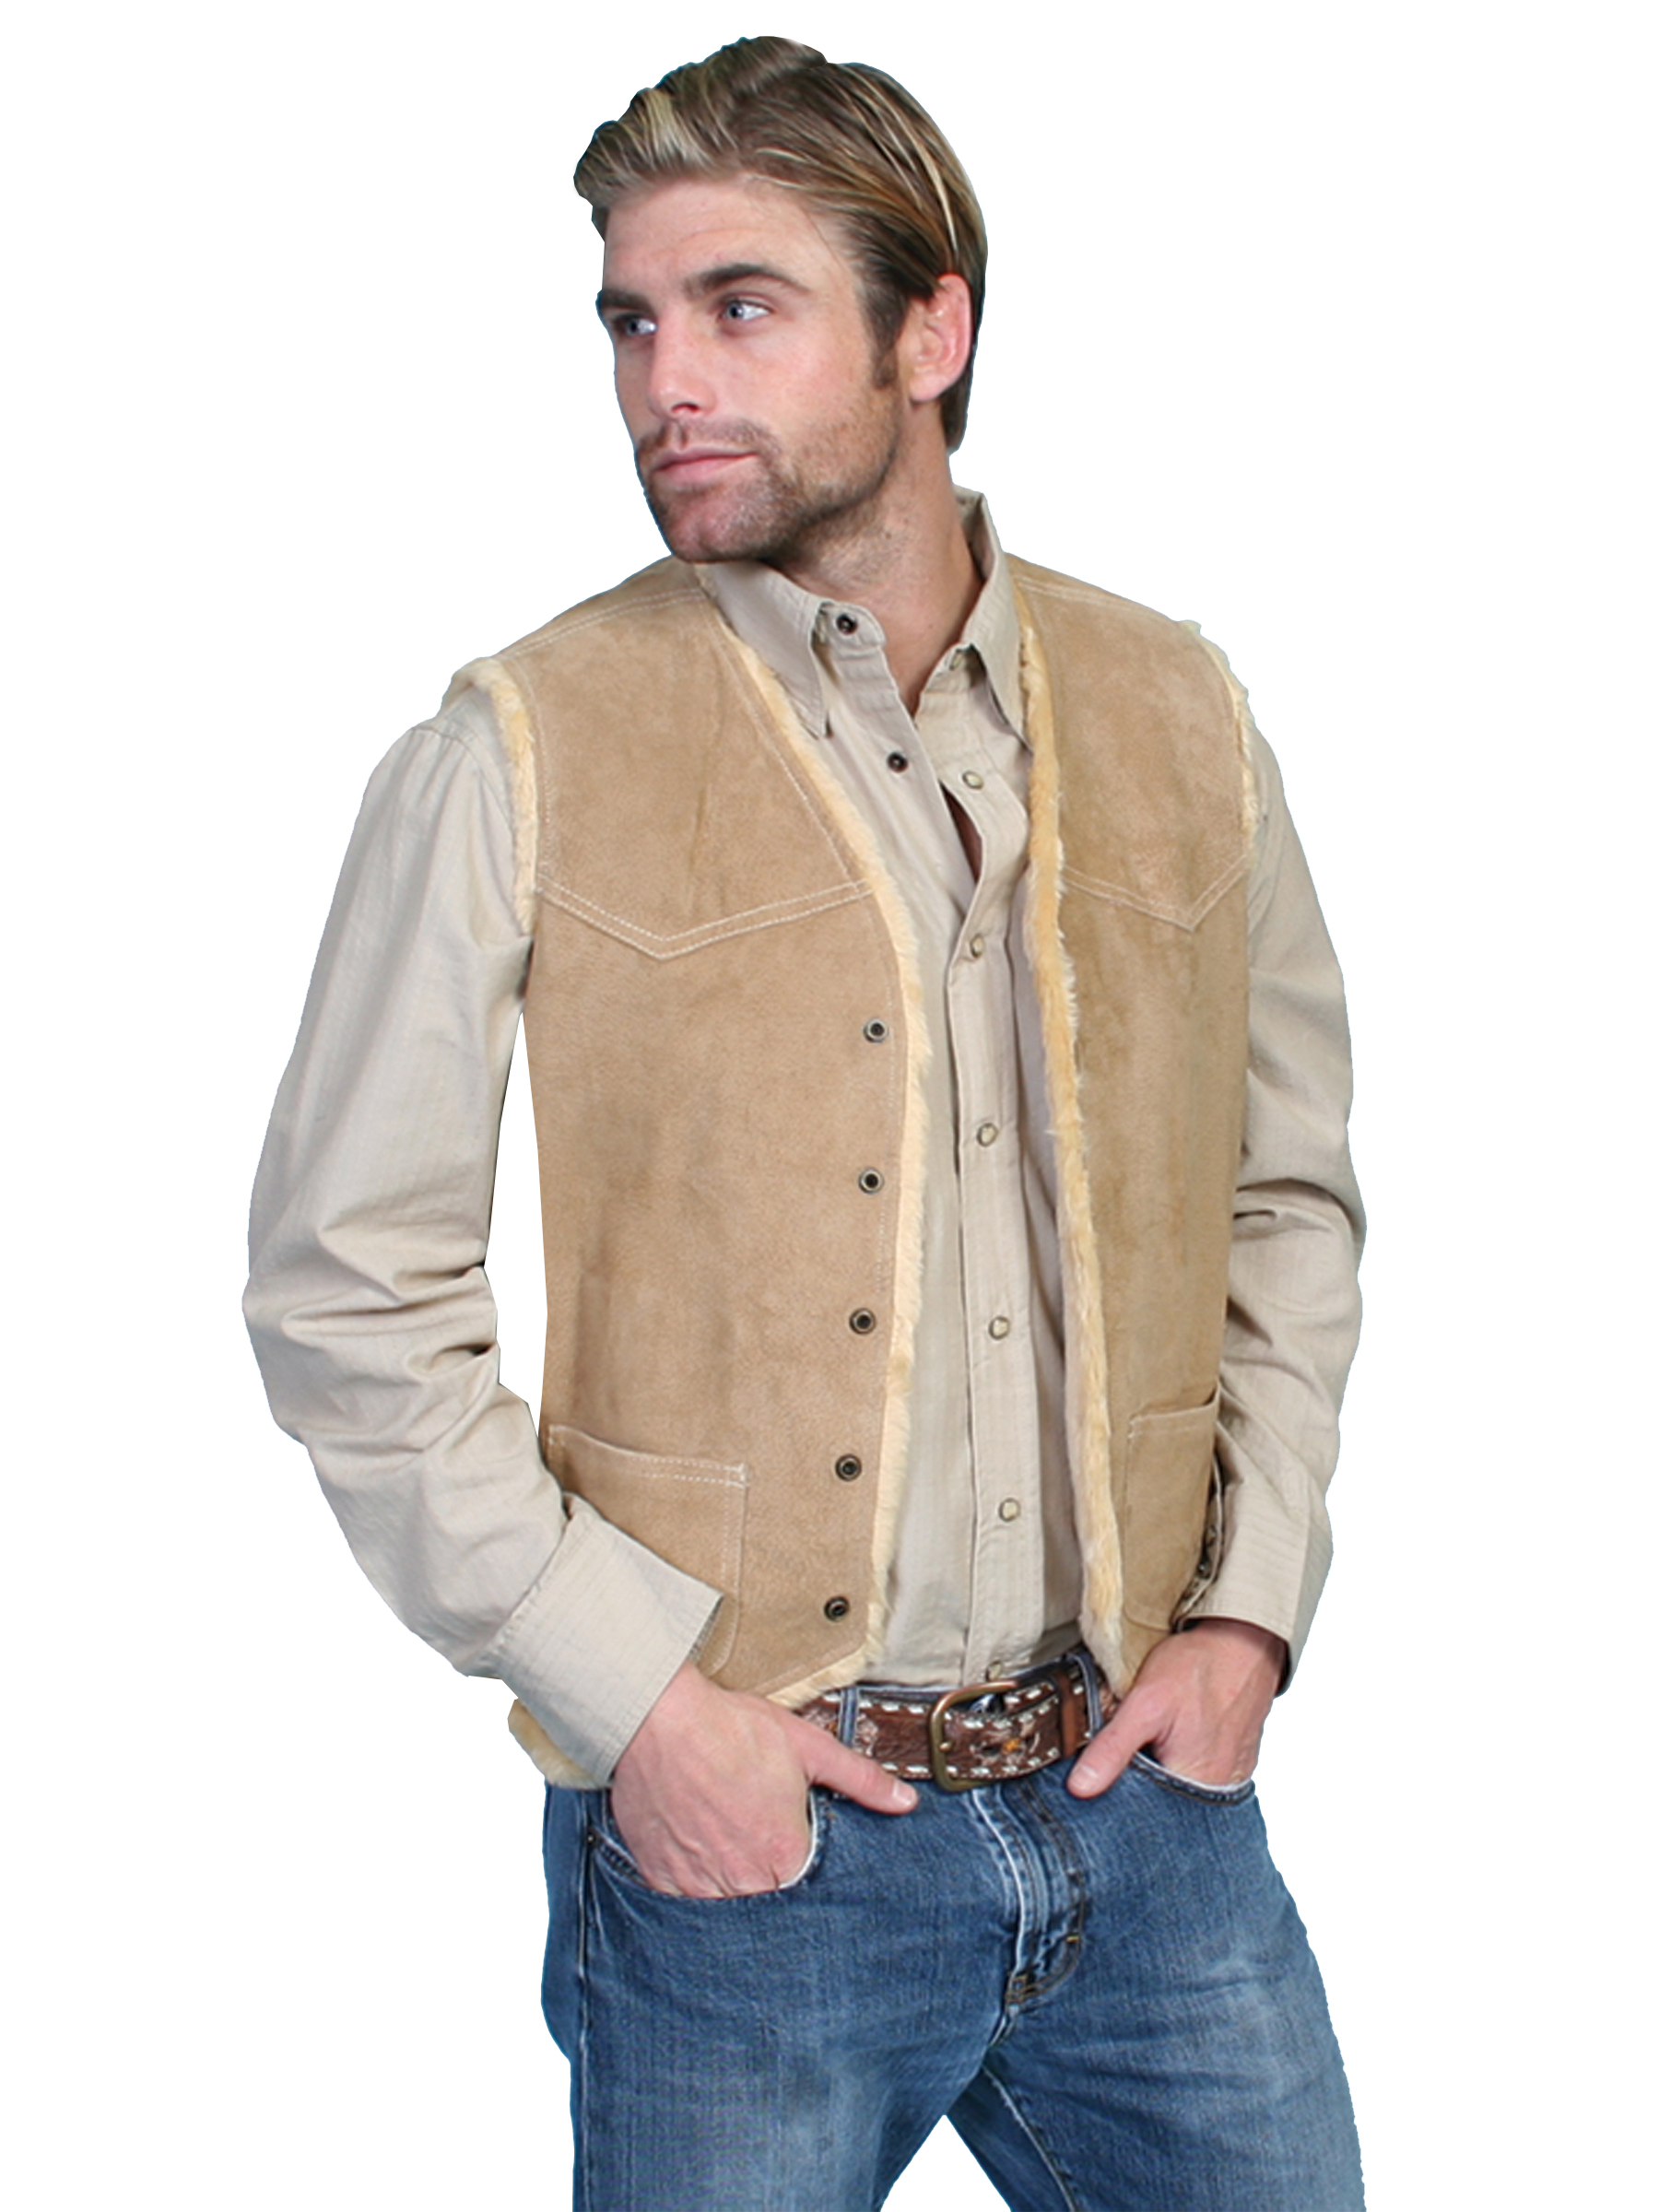 Boar suede hunting vest with faux shearling lining